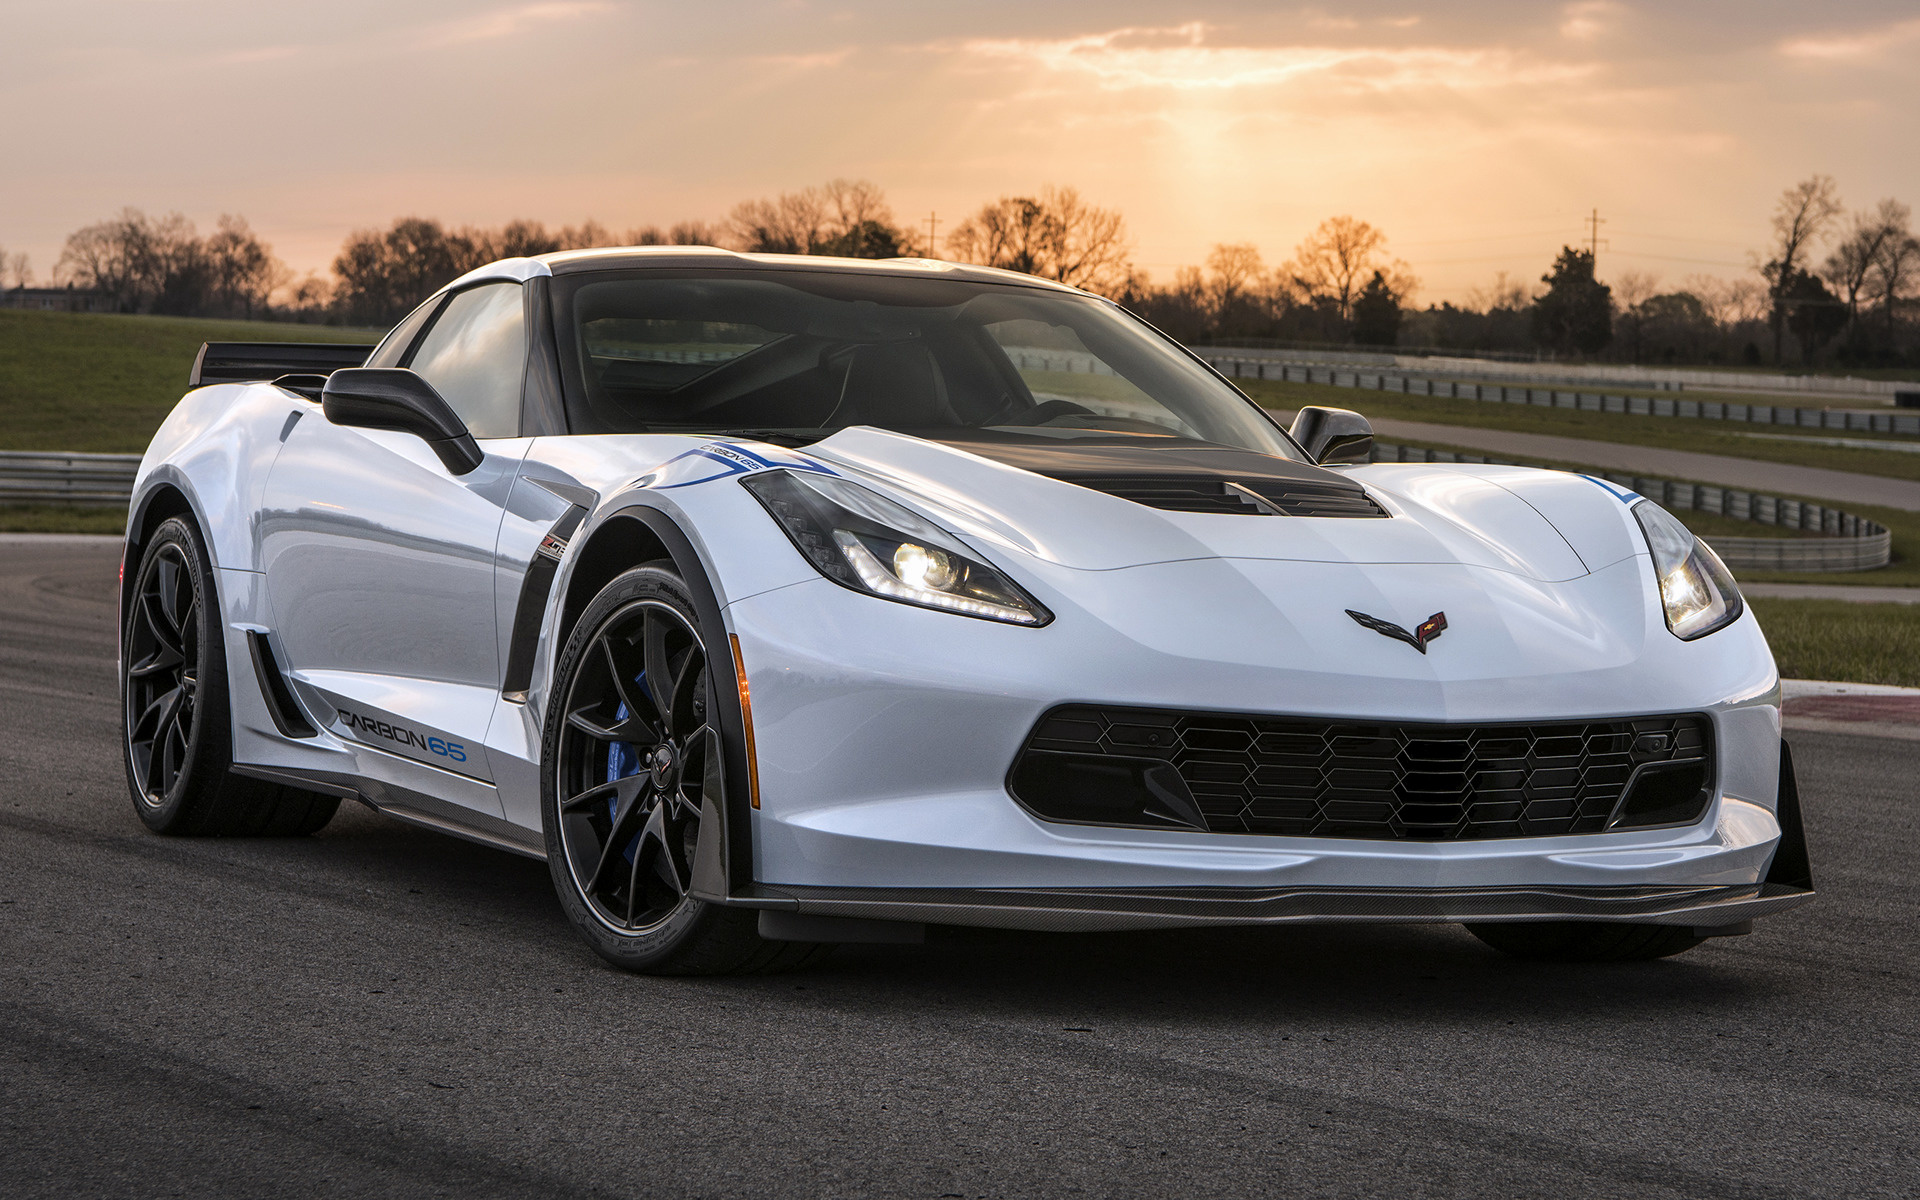 Chevrolet Corvette Z06 Carbon 65 Edition 2018 Wallpapers And HD